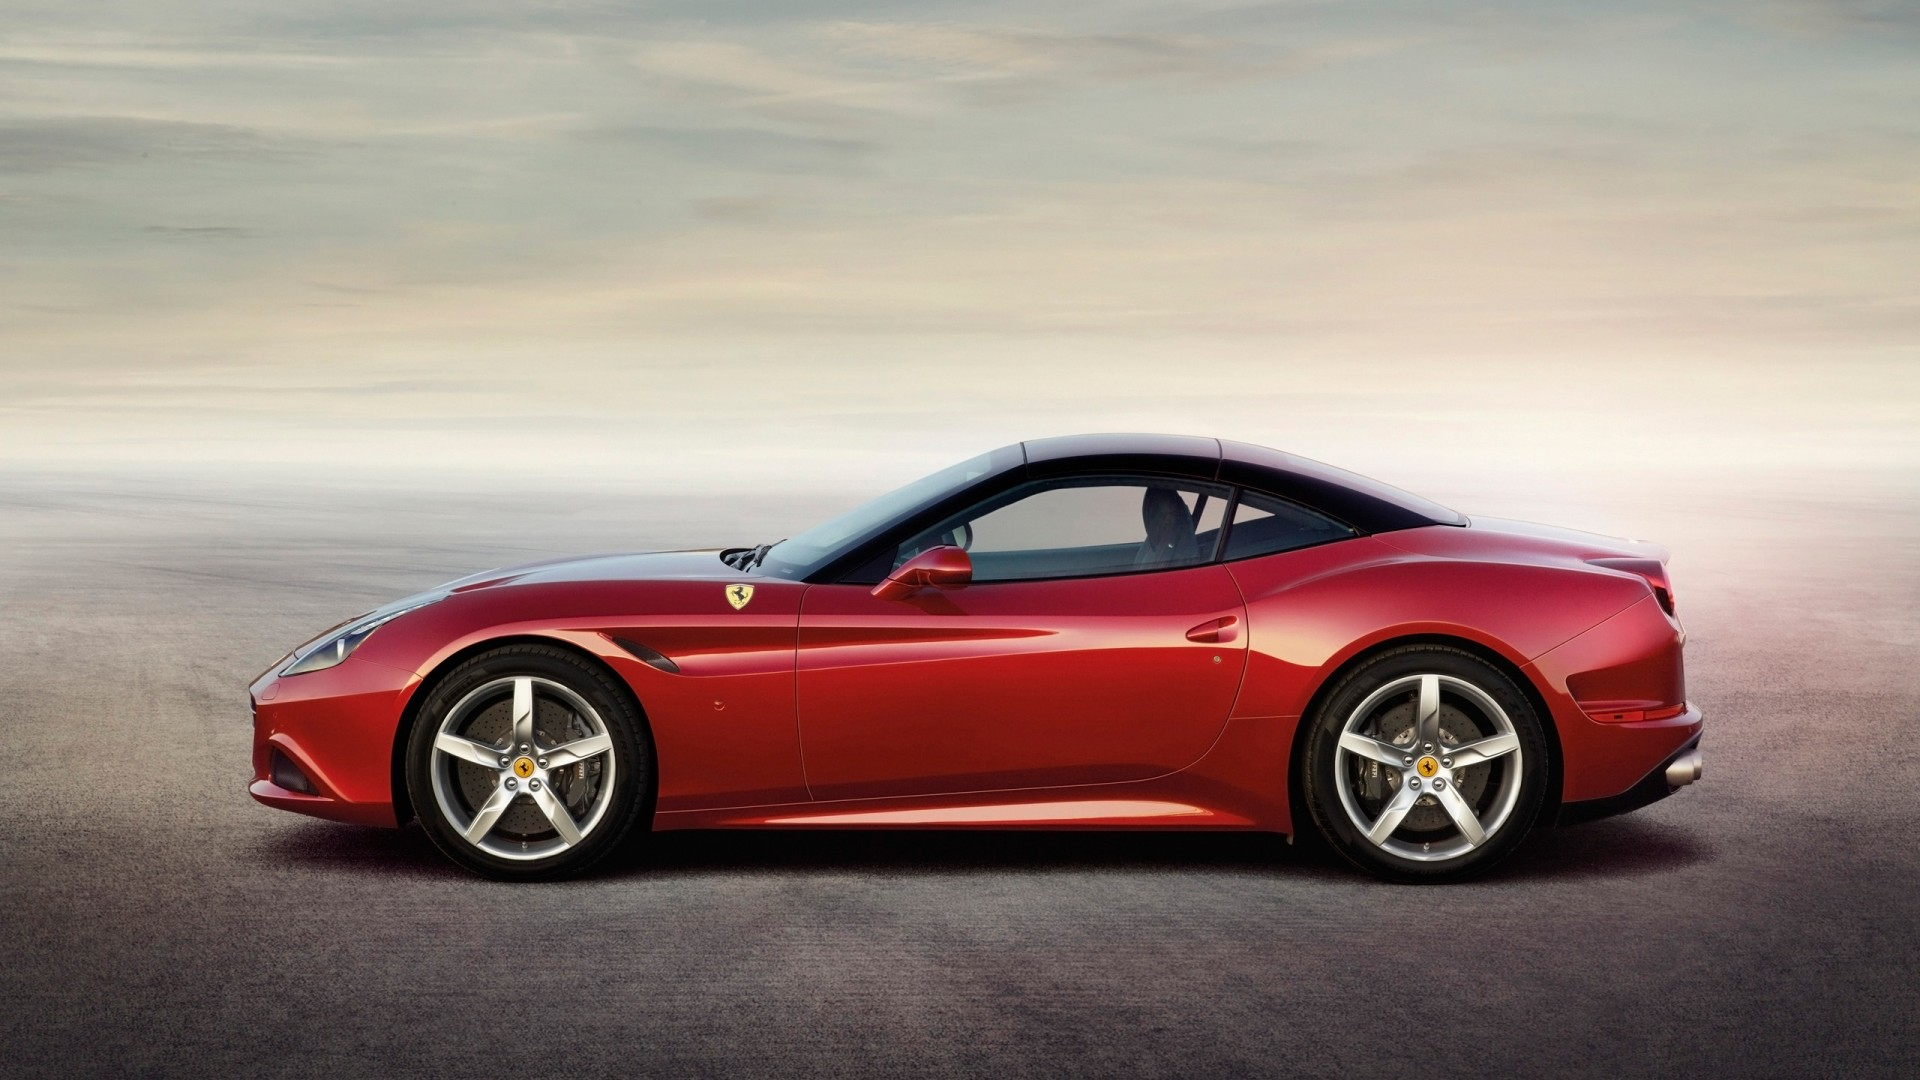 2014 Ferrari California T 6 Wallpaper Hd Car Wallpapers